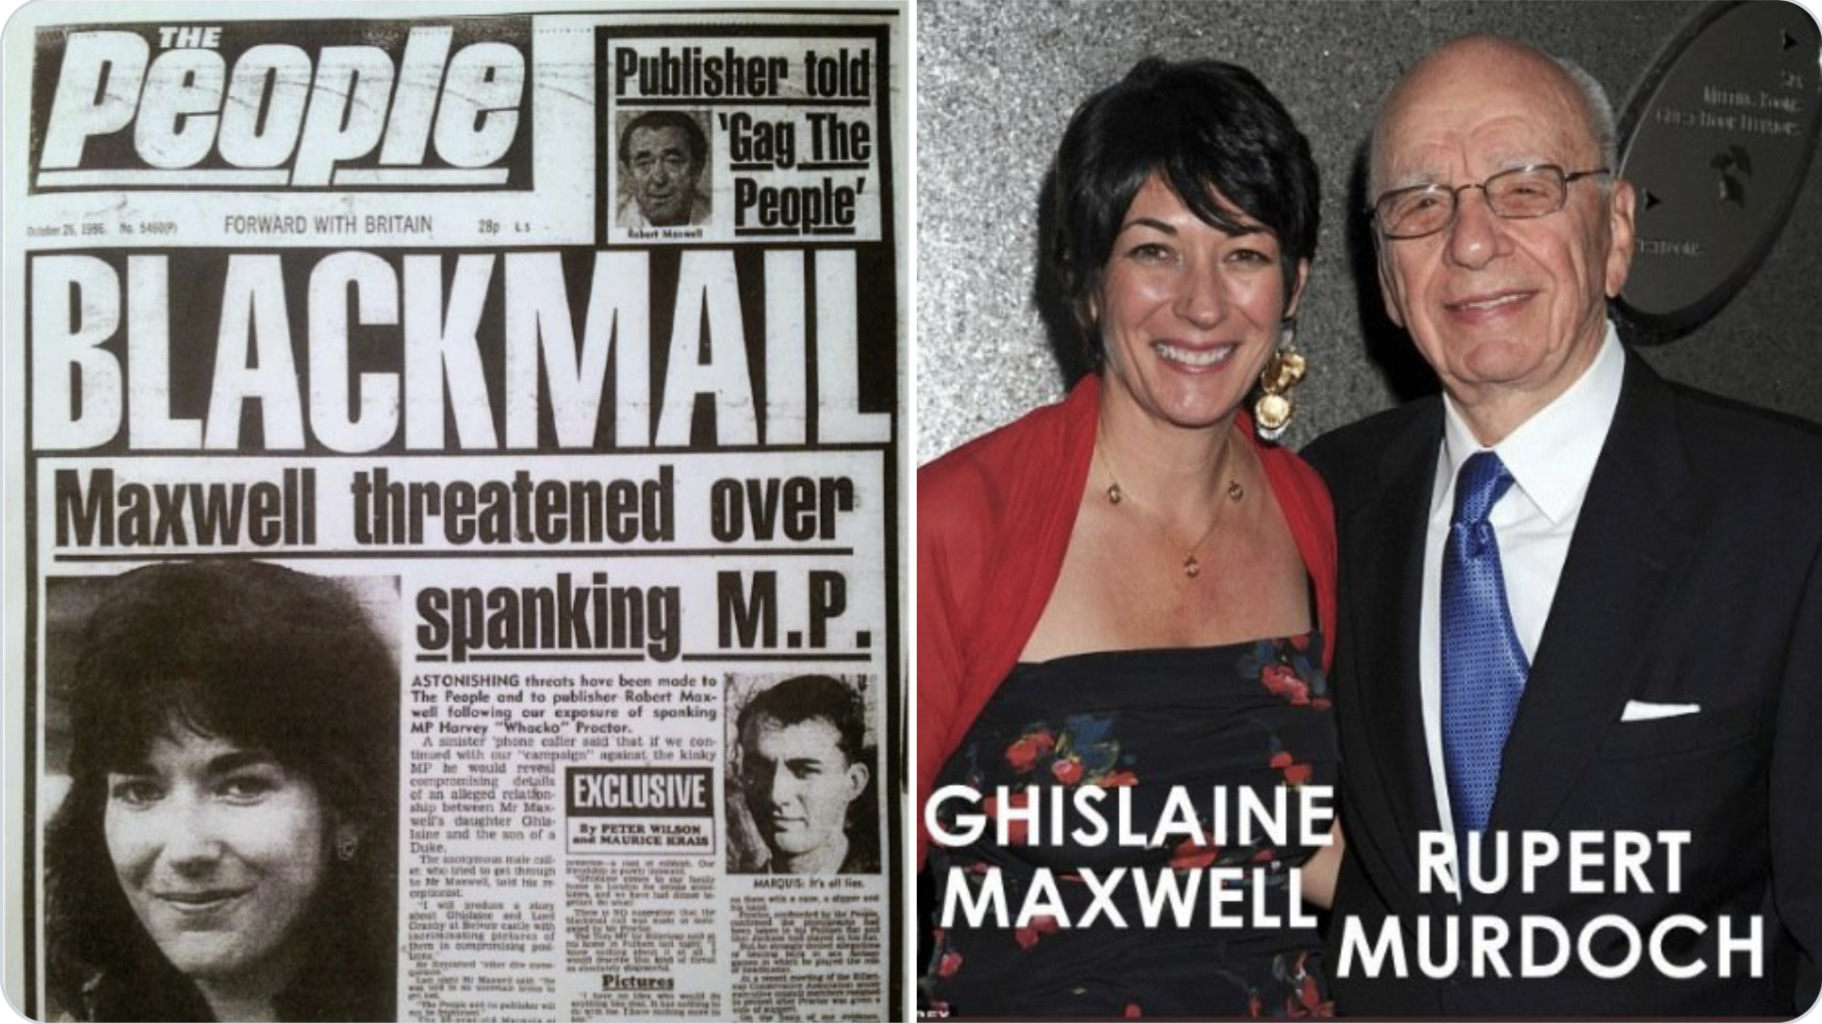 The NY Post (=Rupert Murdoch/Fox News) STAGED & photoshopped the #GhislaineMaxwell photos!